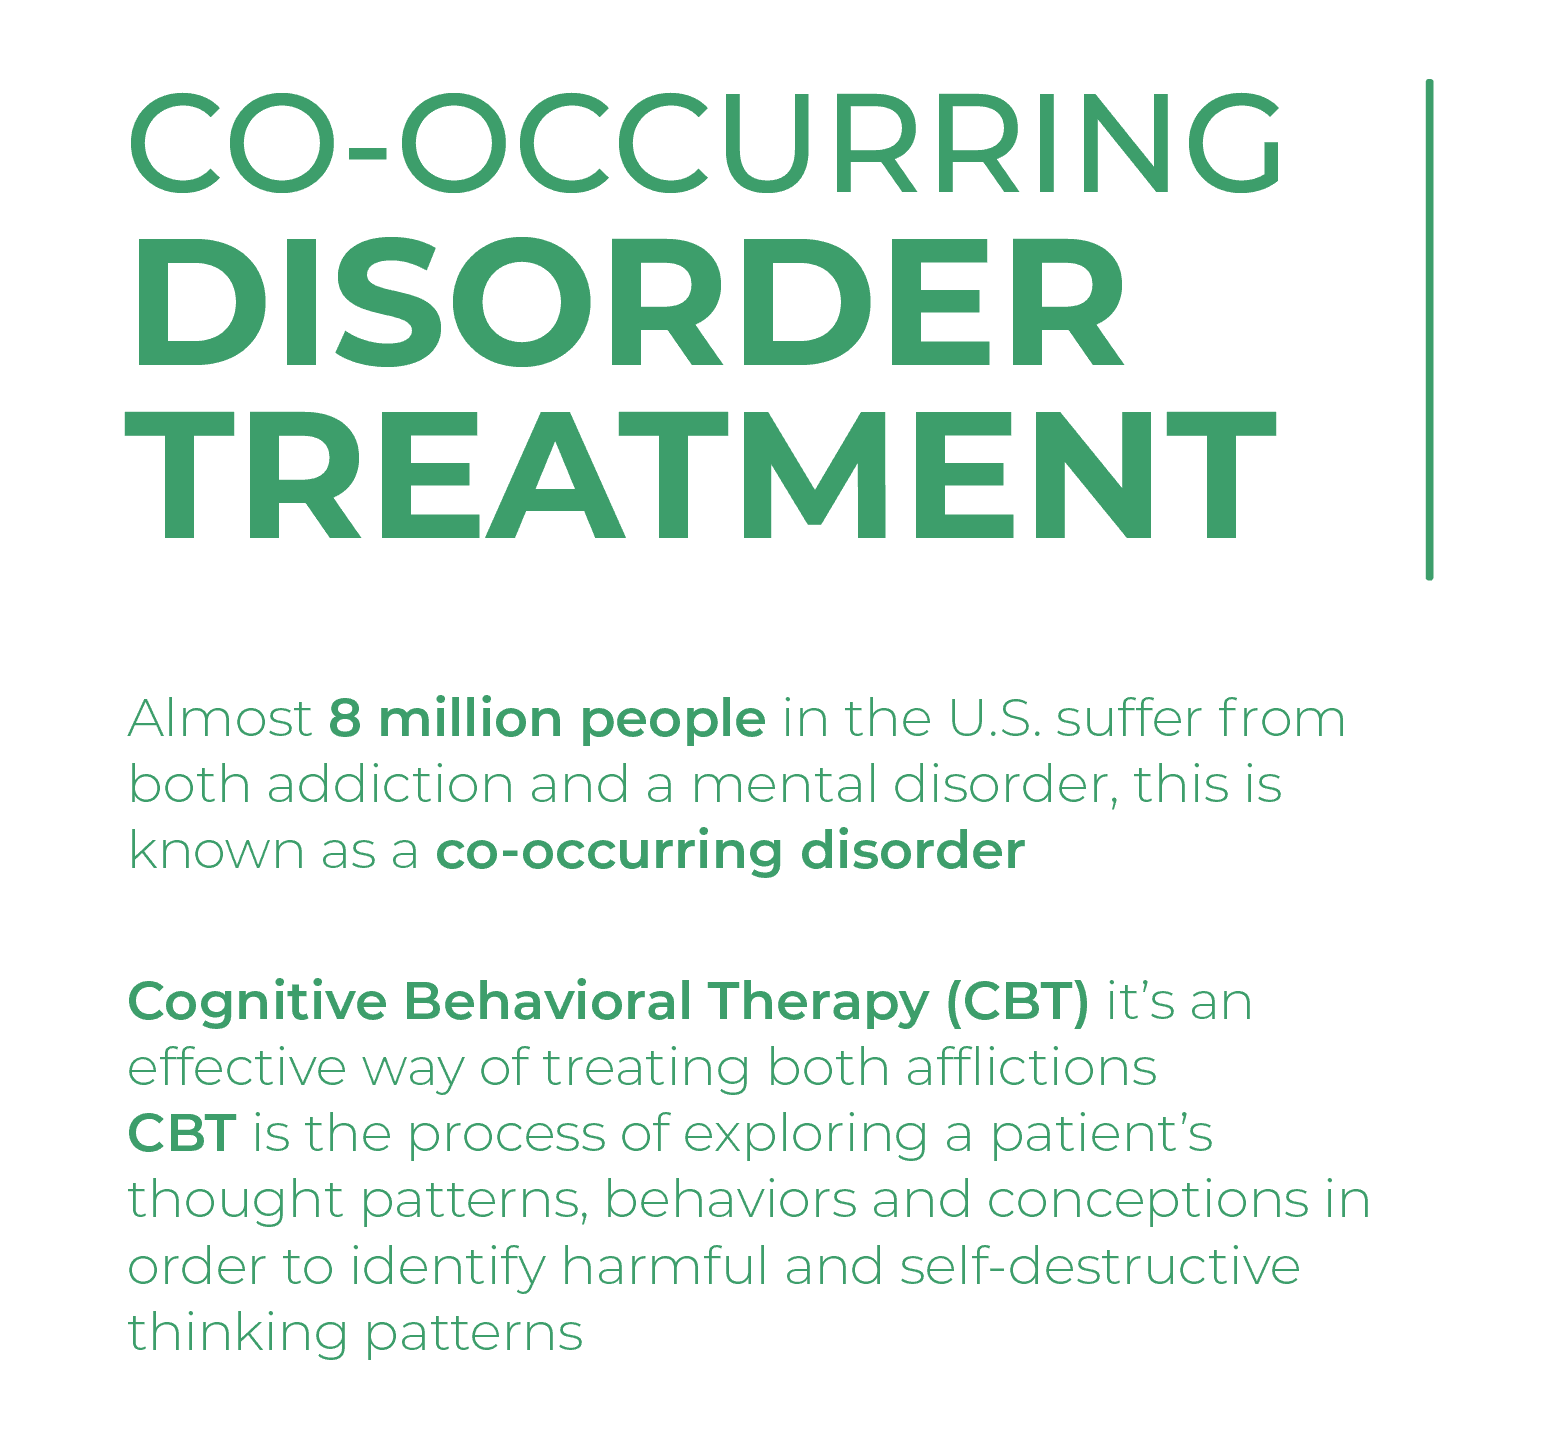 Cottonwood - Co-Occurring Disorder Treatment